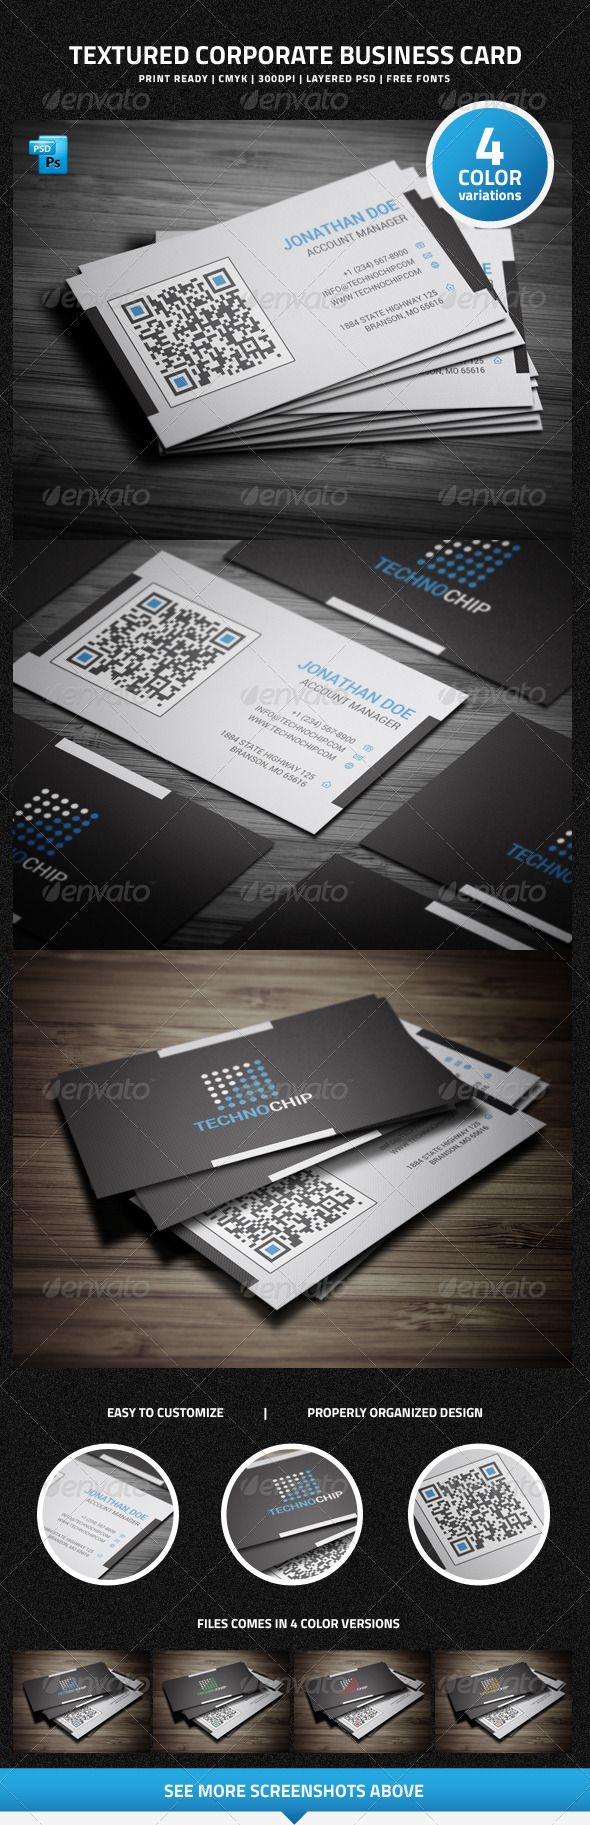 GraphicRiver Textured Corporate Business Card 6366998